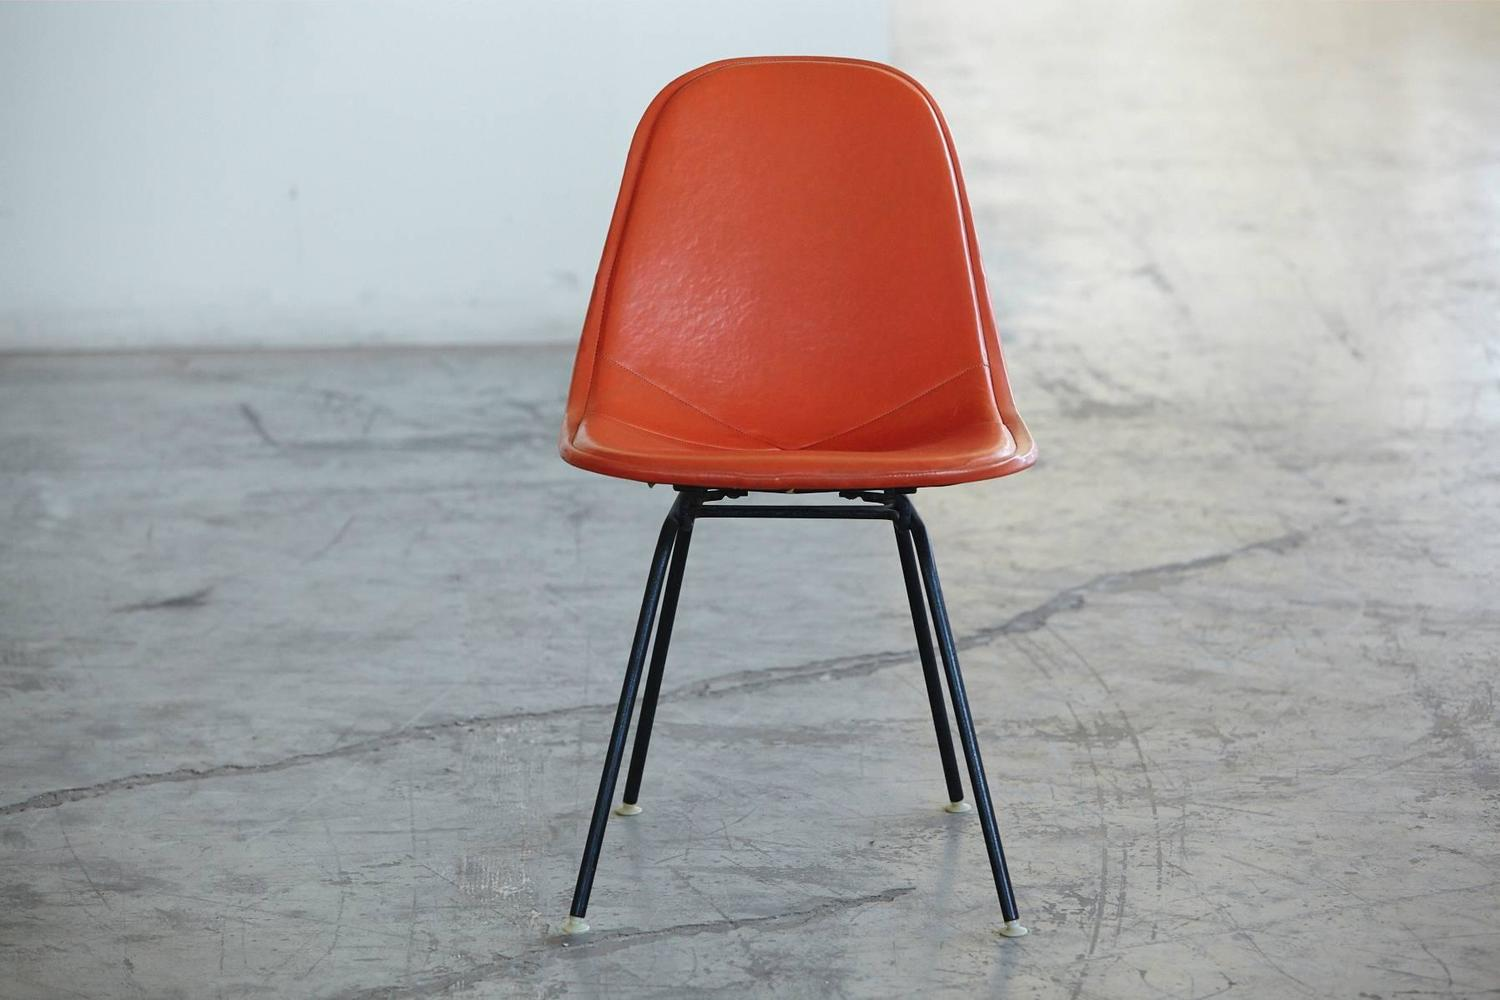 Original Eames DKX 1 Side Chair In Orange Leather For Herman Miller 1960s Fo